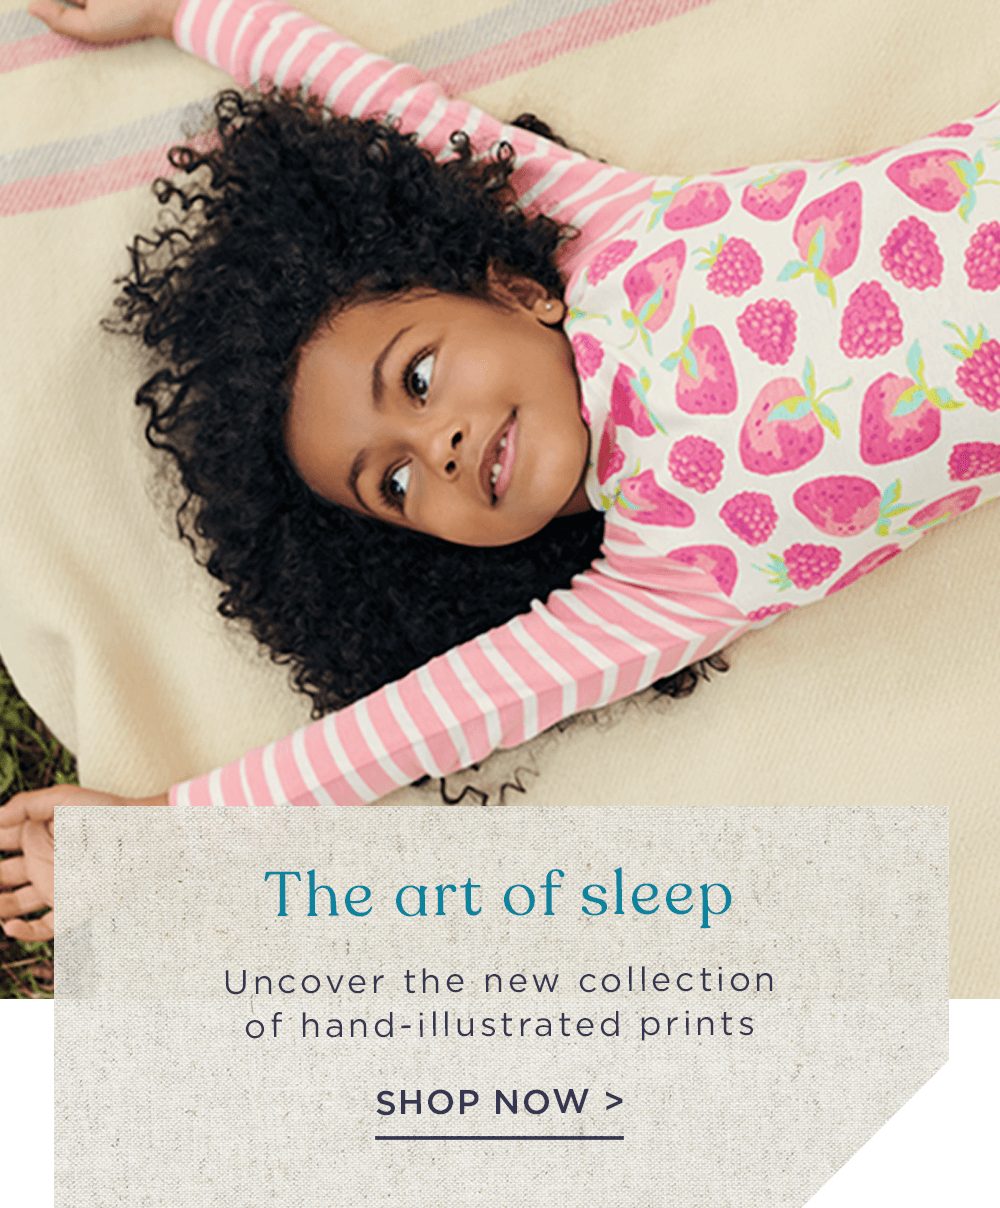 Uncover the new sleepwear collection